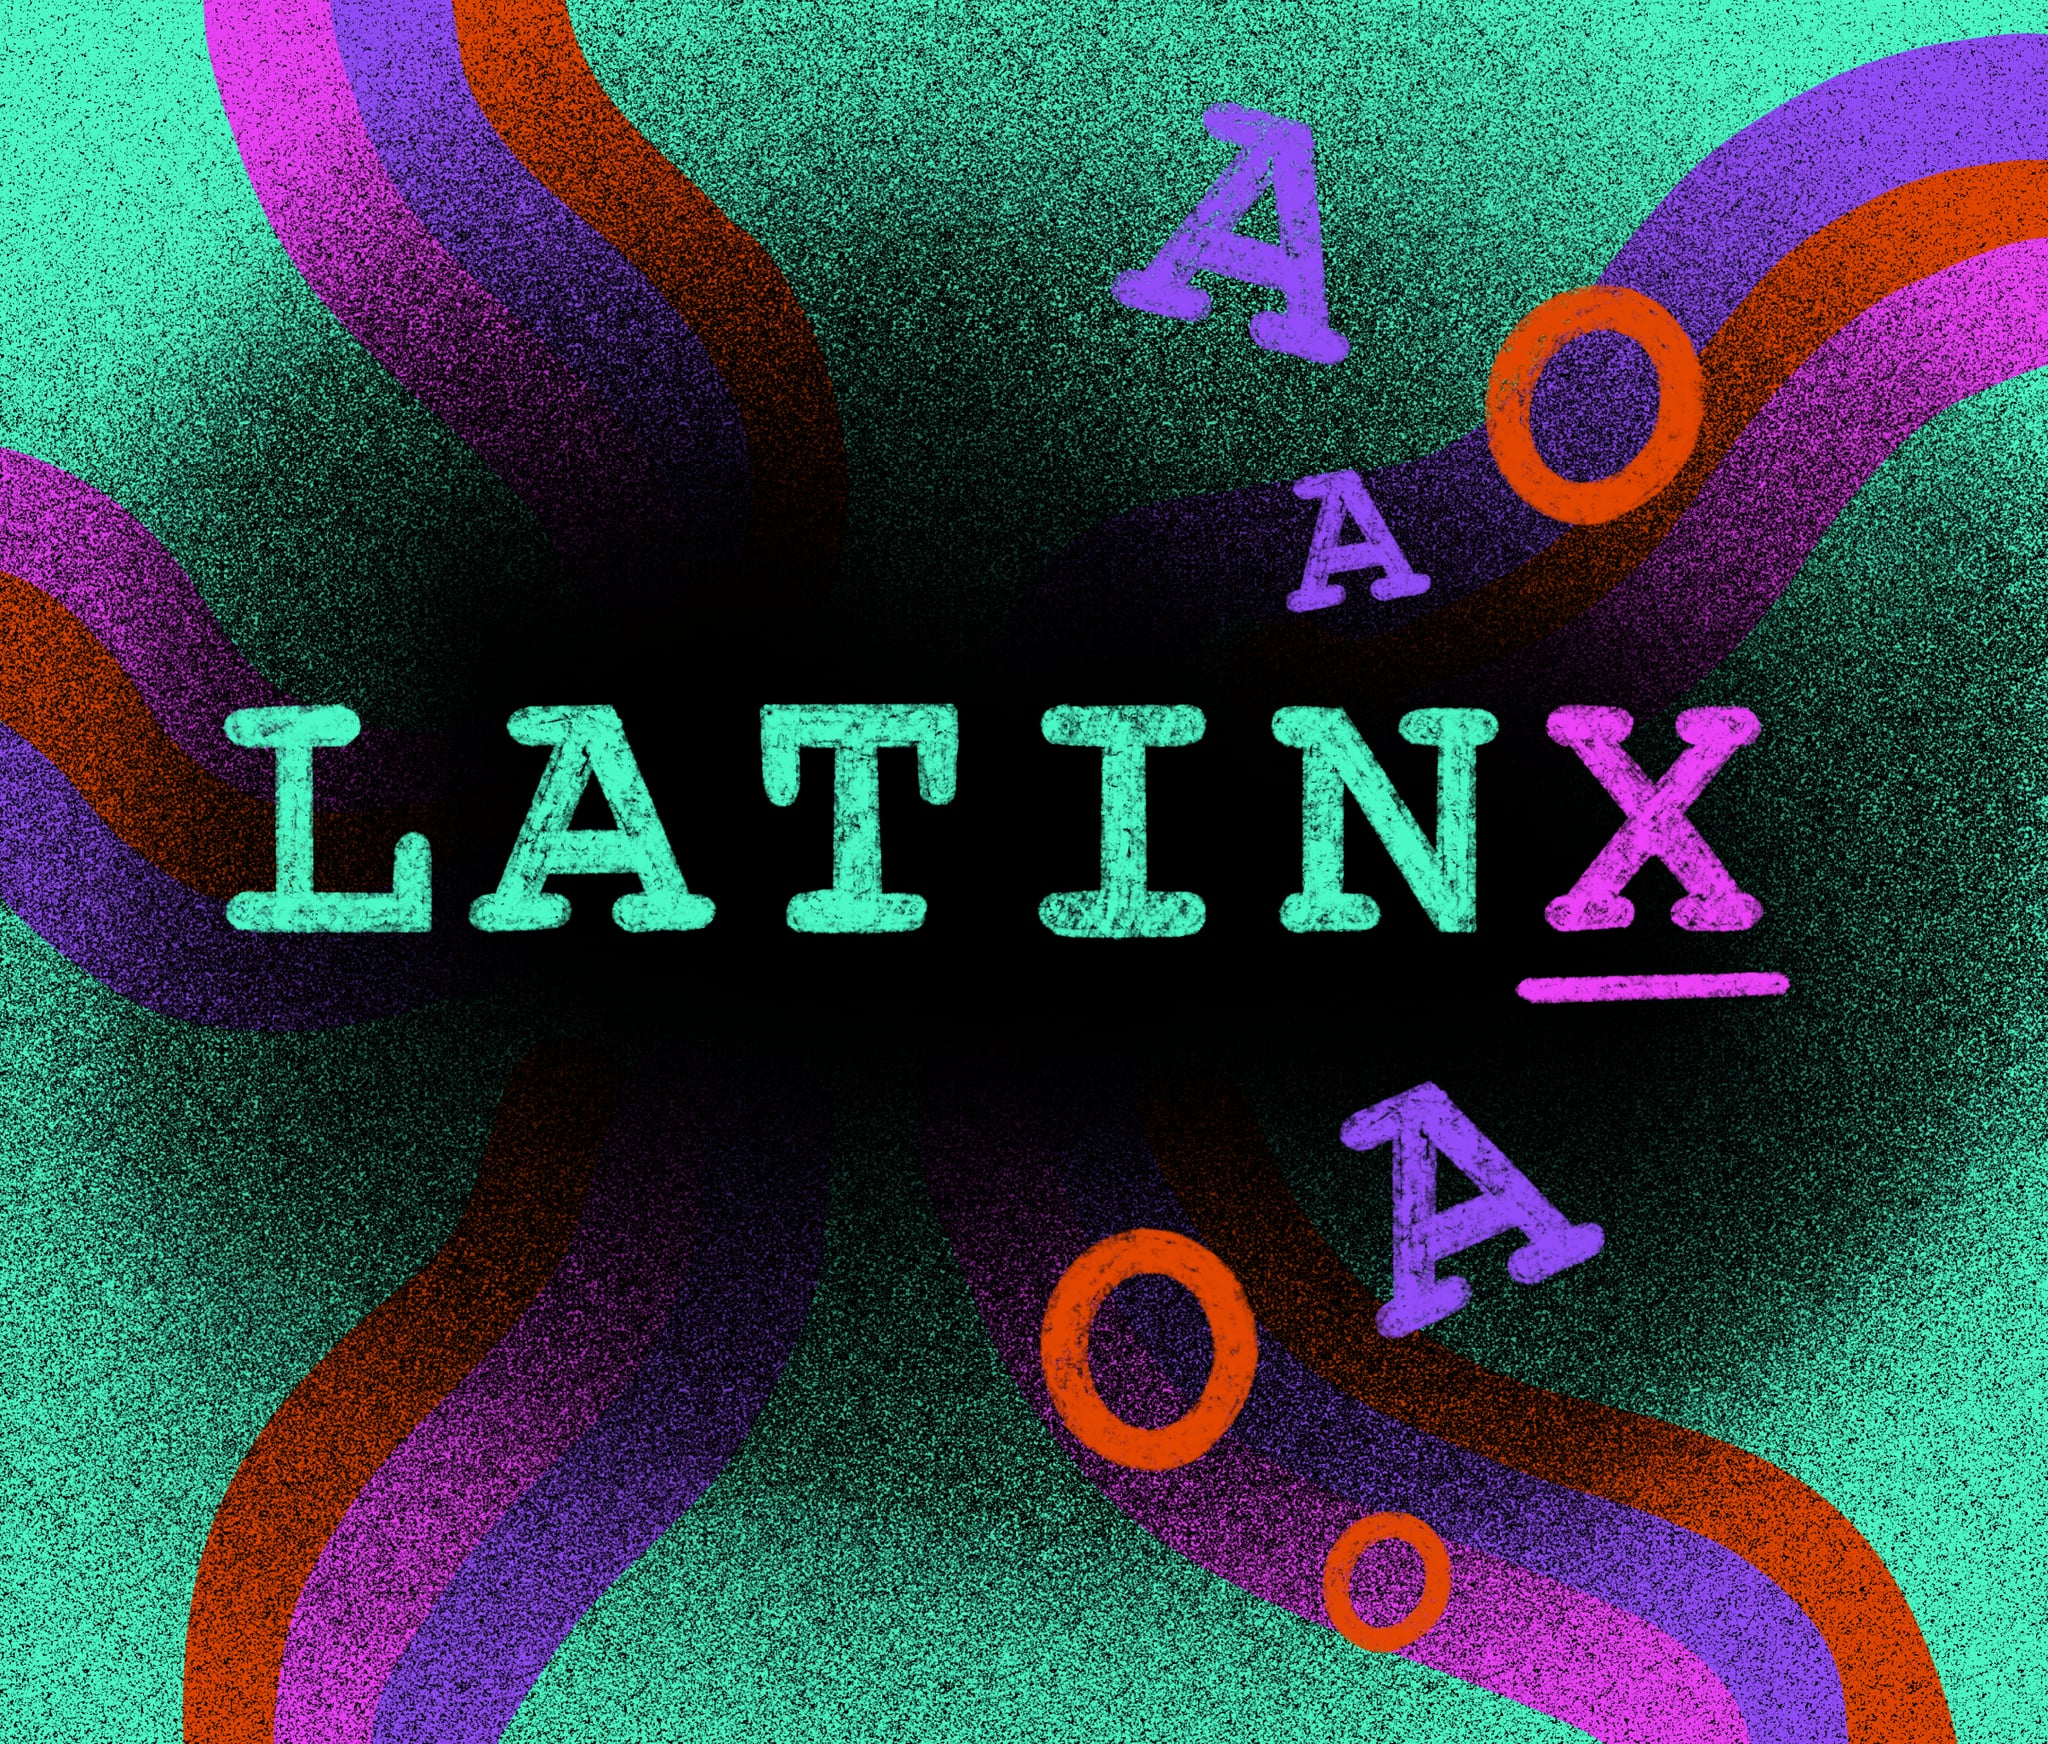 Latino, Latina, or Latinx? Here's How to Use These Terms